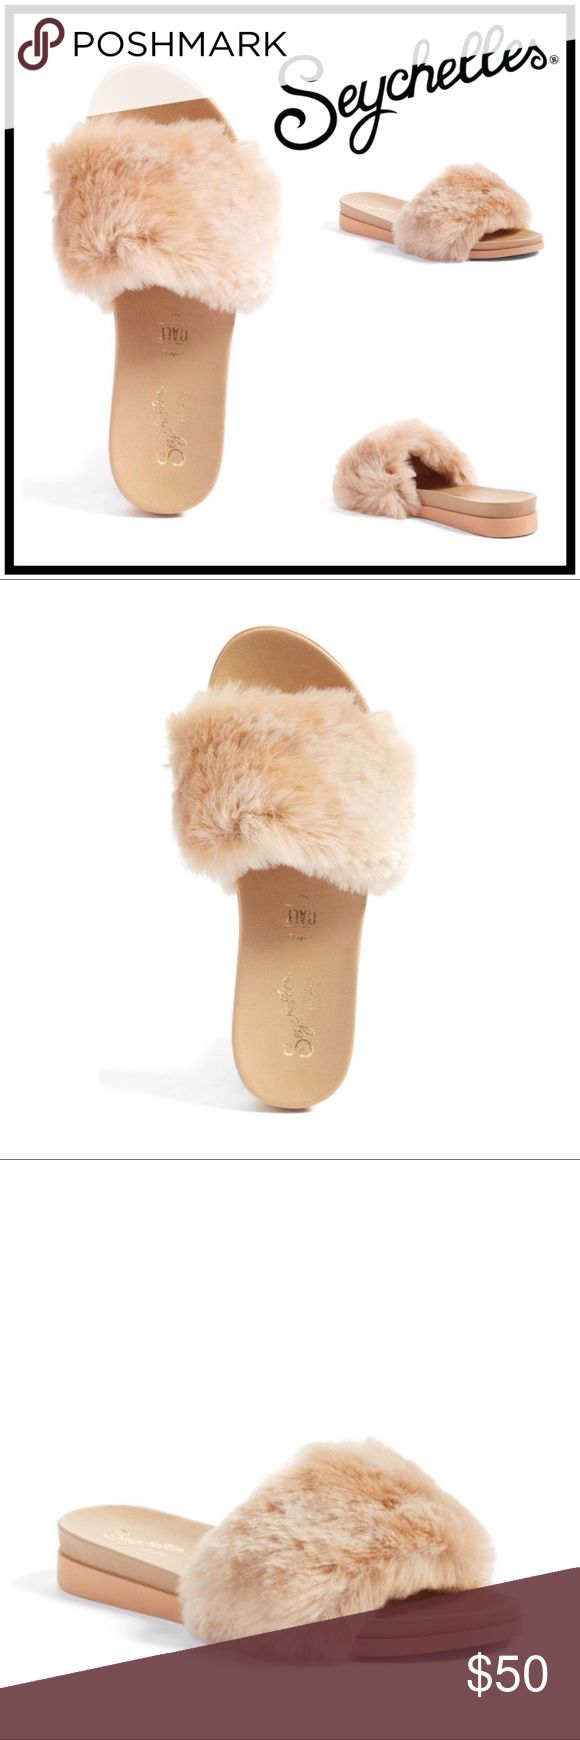 """Seychelles Beyond Reason Faux Fur Slide Sandal Seychelles Beyond Reason Faux Fur Slide Sandal Color: Blush  Fluffy faux fur blankets the strap of a chic, casual slide sandal crafted in Italy.    Sizing: True to size.   - Open toe - Faux fur vamp - Slip-on style - Cushioned insole - Wedge heel - Approx. 1.25"""" heel  - Made in Italy   Materials Synthetic and faux fur (polyester) upper, manmade sole Seychelles Shoes Sandals"""